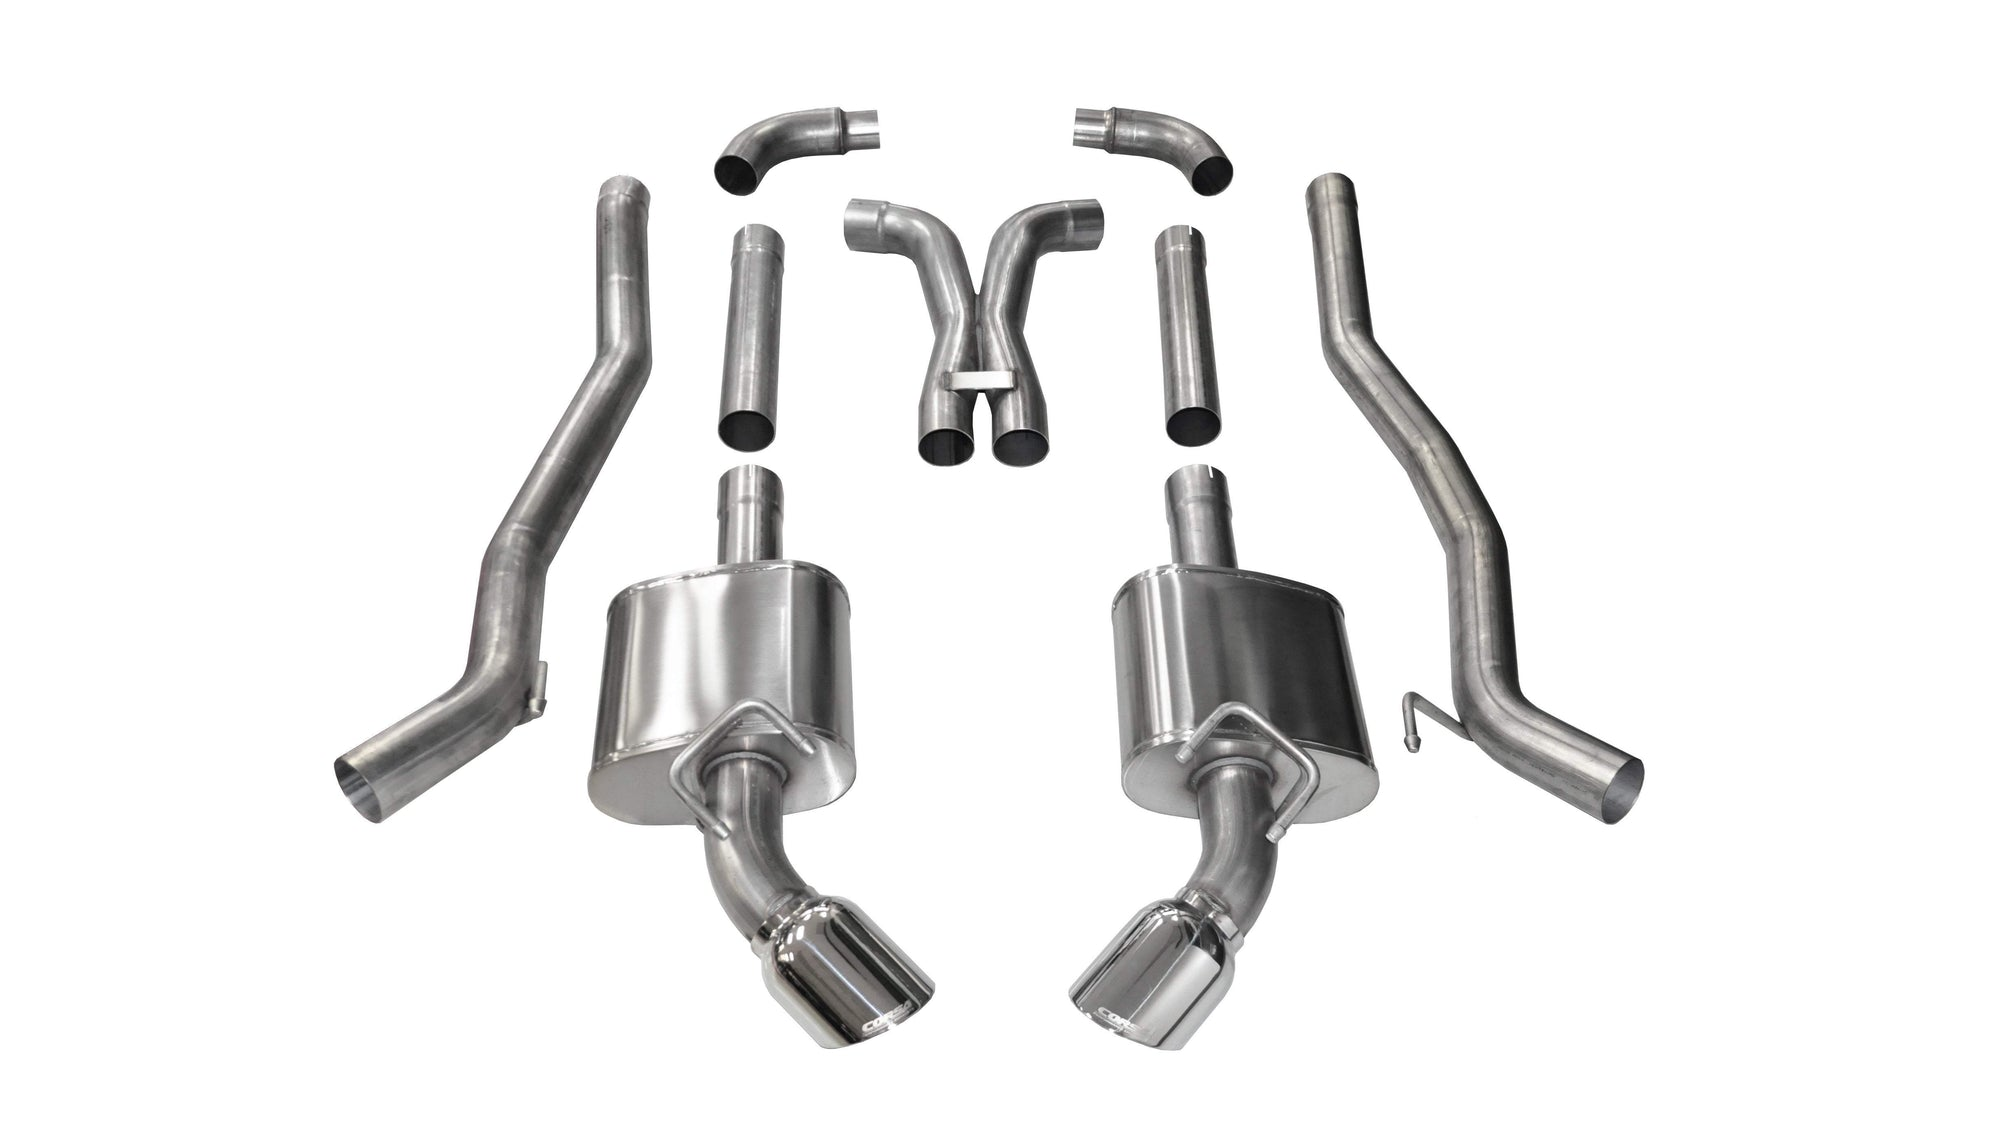 "CORSA PERFORMANCE Cat-Back Exhaust Polished / Xtreme / Dual Rear - Single 4.5in 2010-2015 Chevrolet Camaro SS, 6.2L V8 Manual (All) & Automatic (Convertible), 3.0"" Dual Rear Exit Catback Exhaust System with 4.5"" Tips (14968) Xtreme Sound Level"